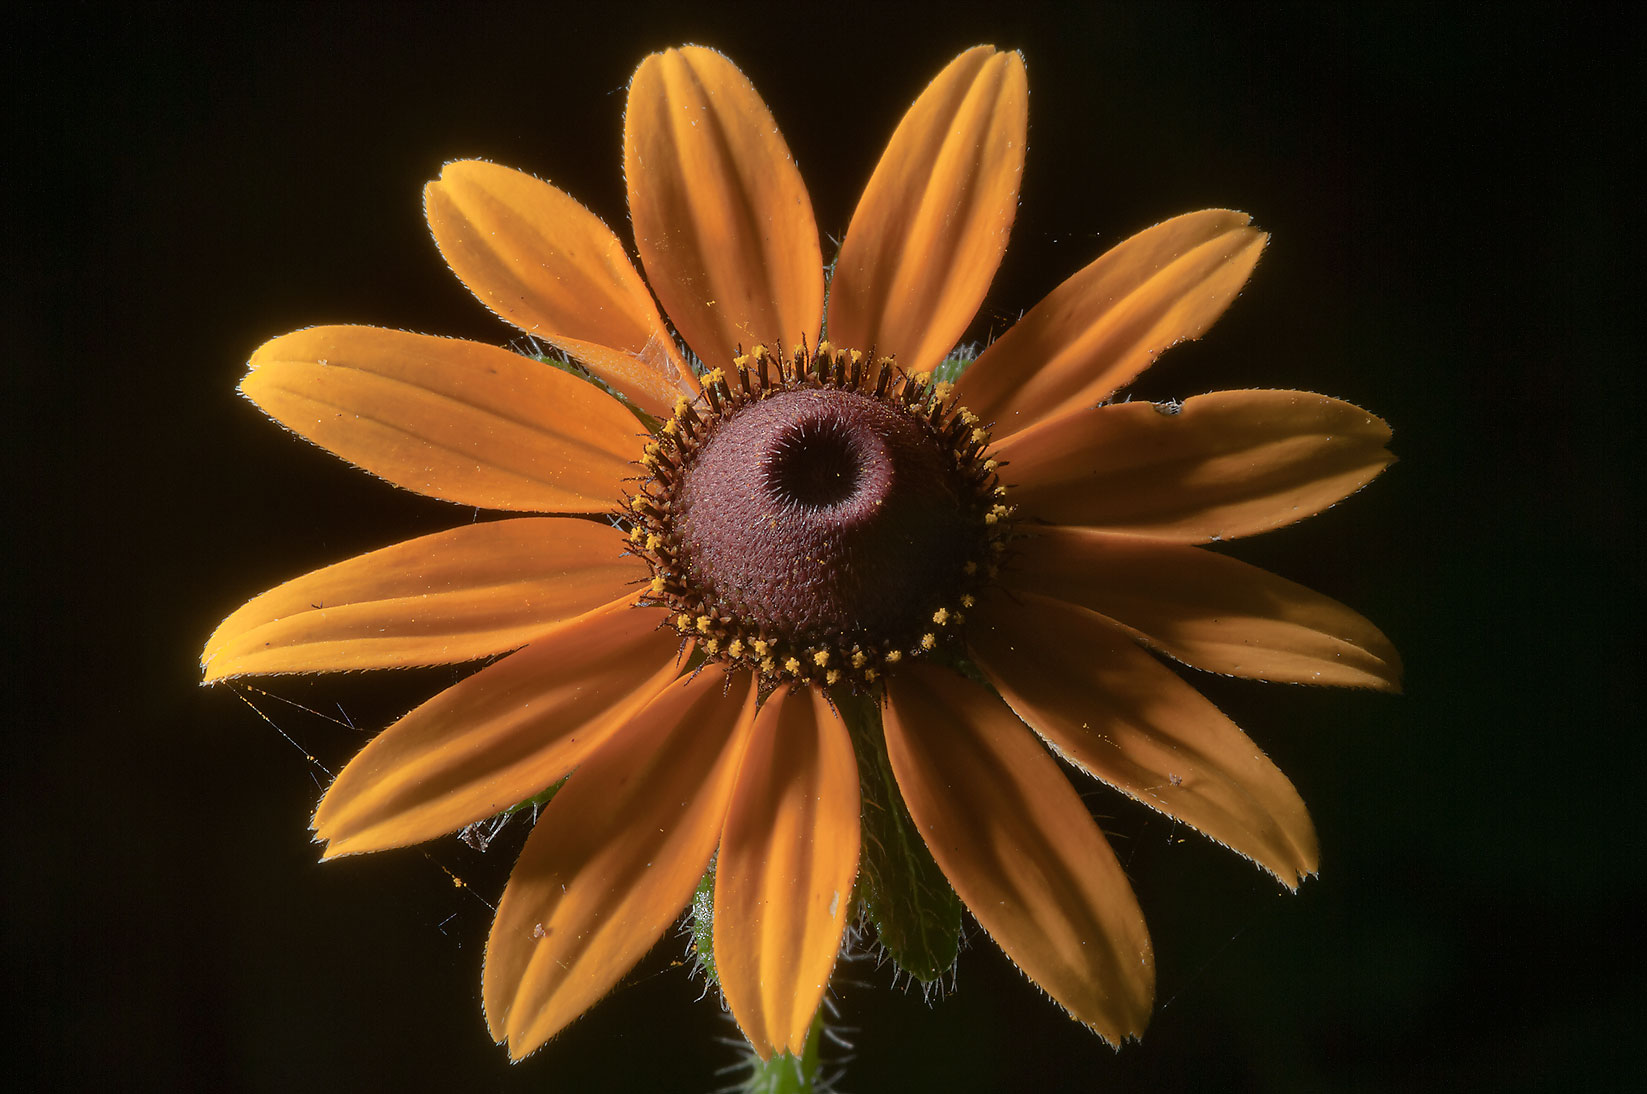 Black eyed susan flower (Rudbeckia hirta) in...National Forest. Richards, Texas